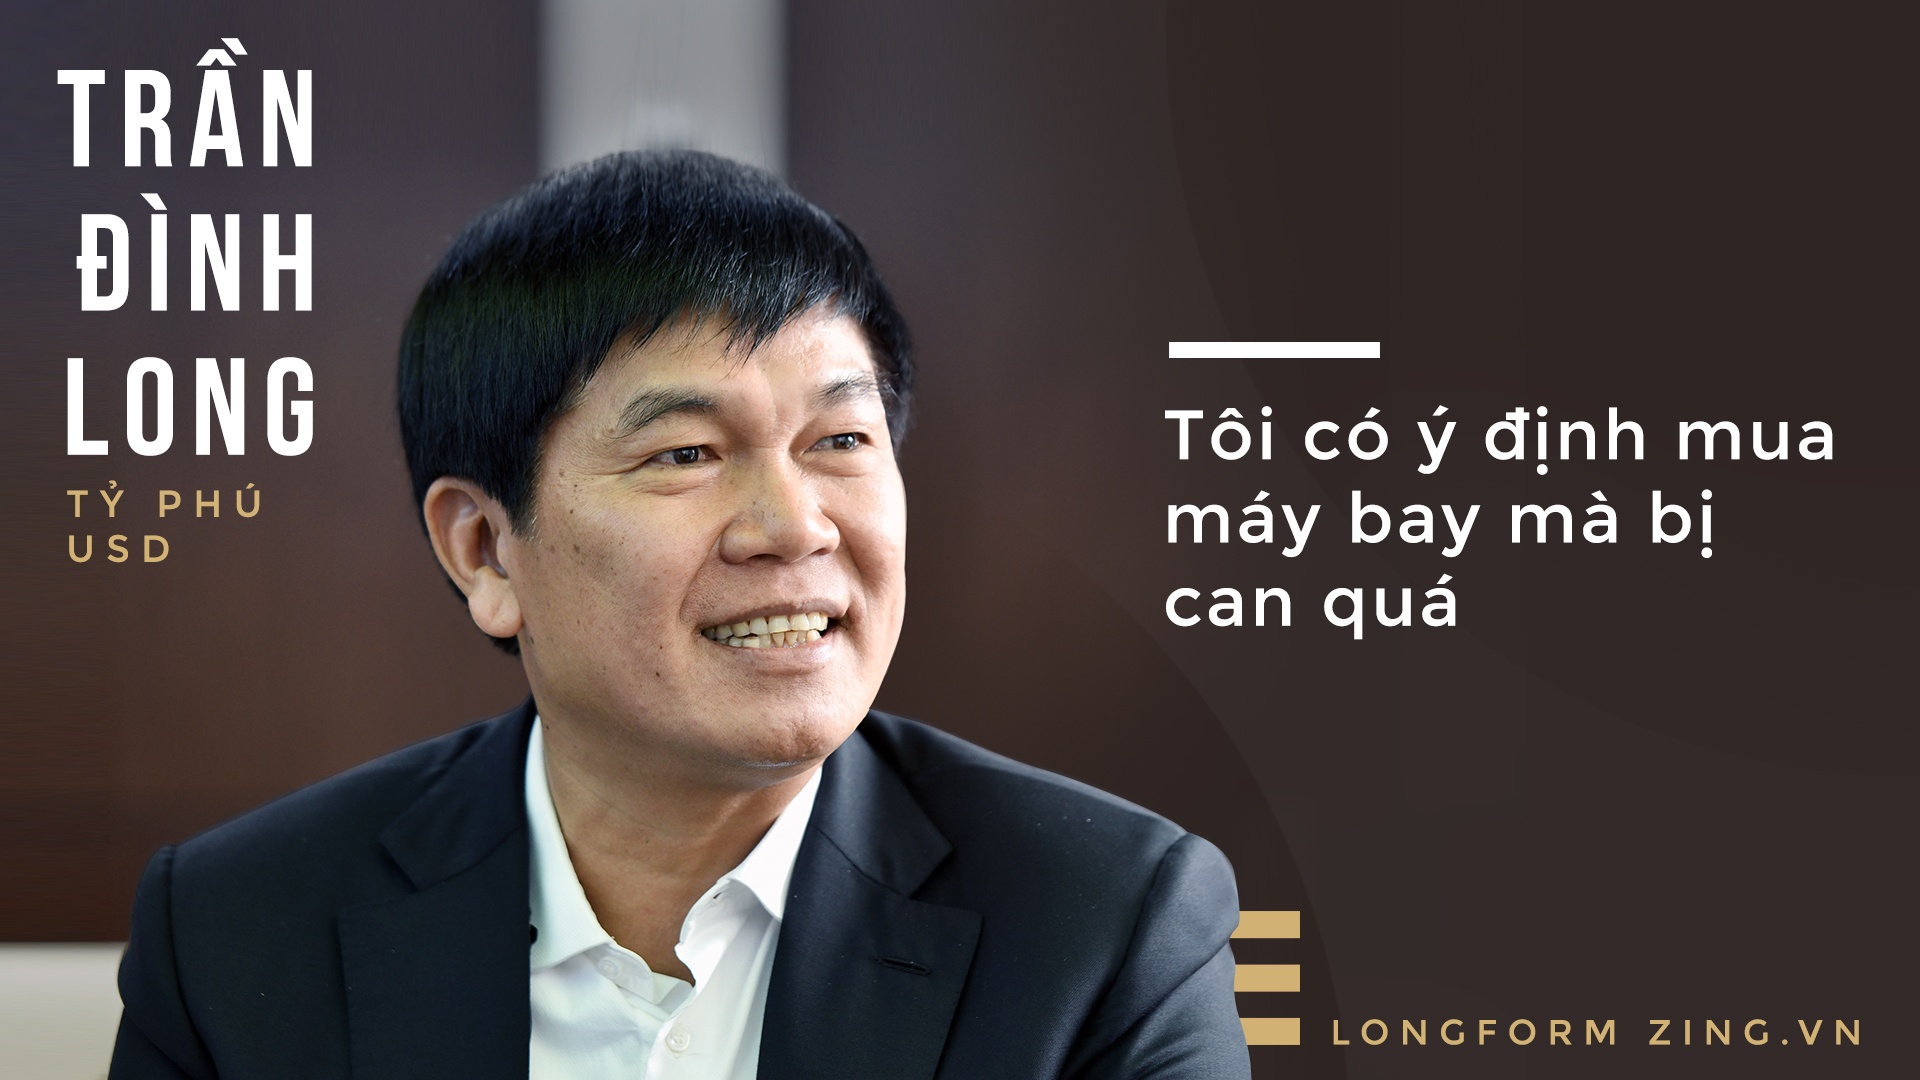 tran dinh long thanh ty phu dola forbes anh 2